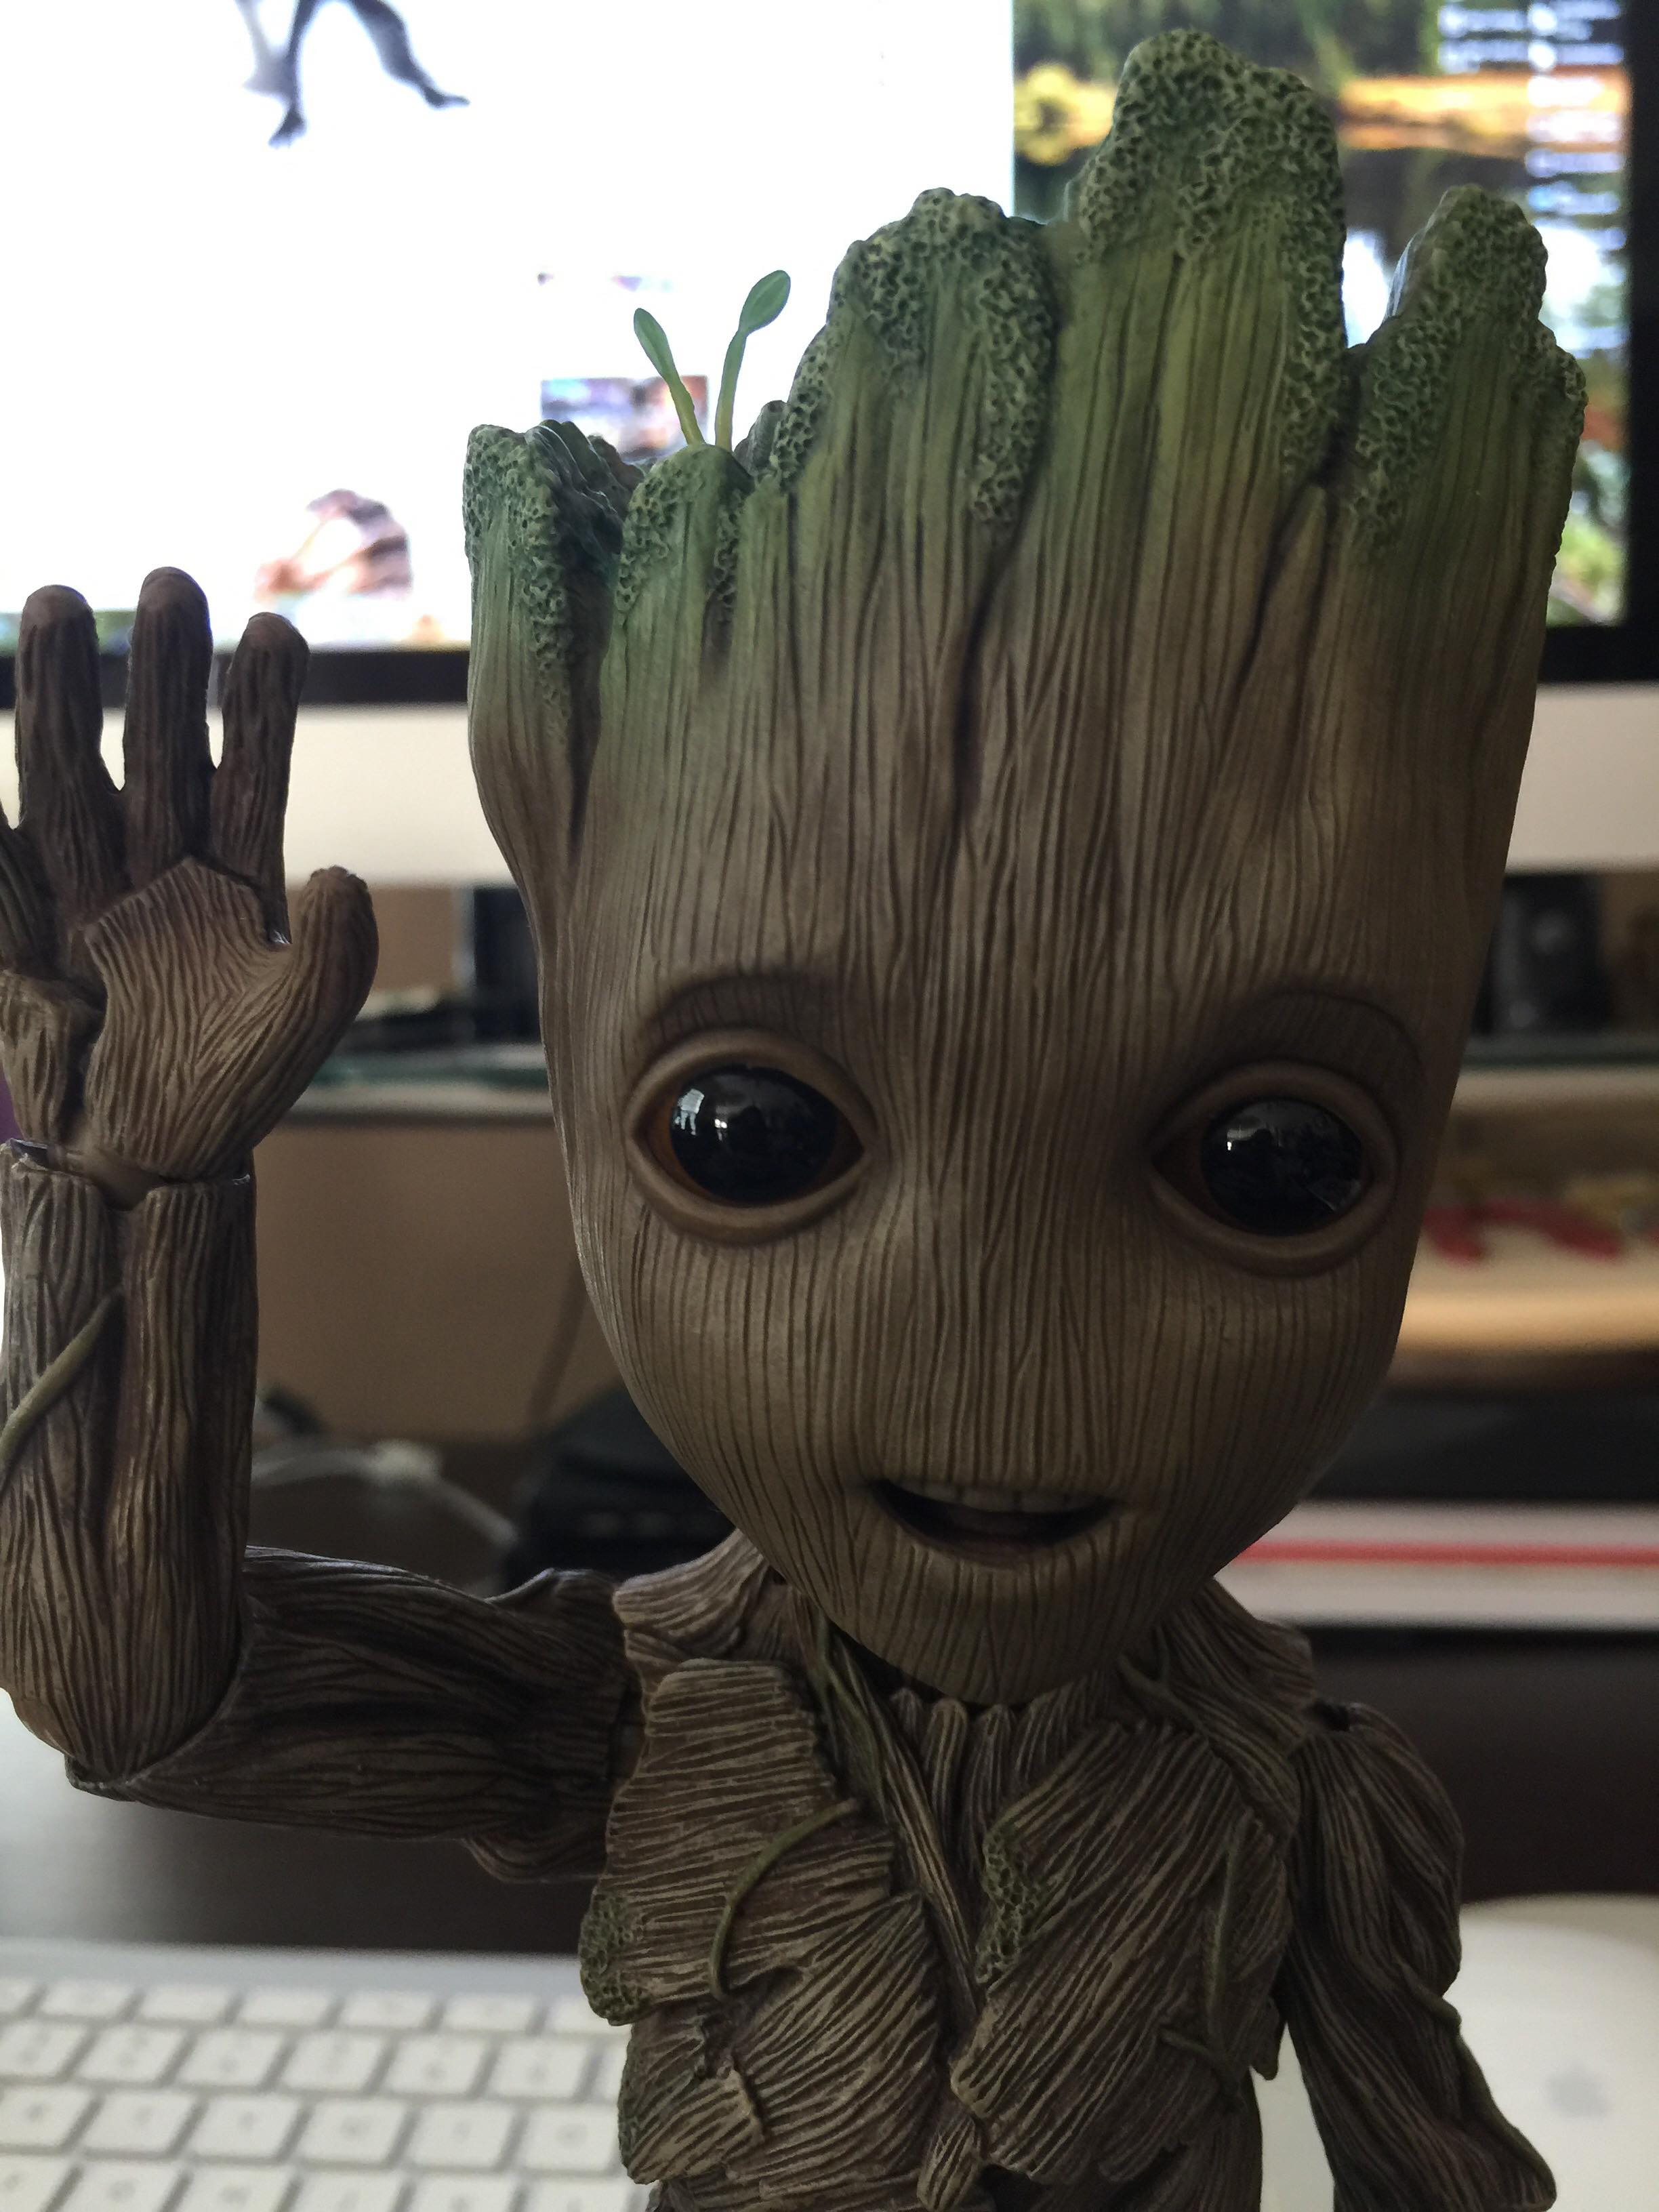 Hot Toys Life Size Baby Groot Figure Review Amp Photos